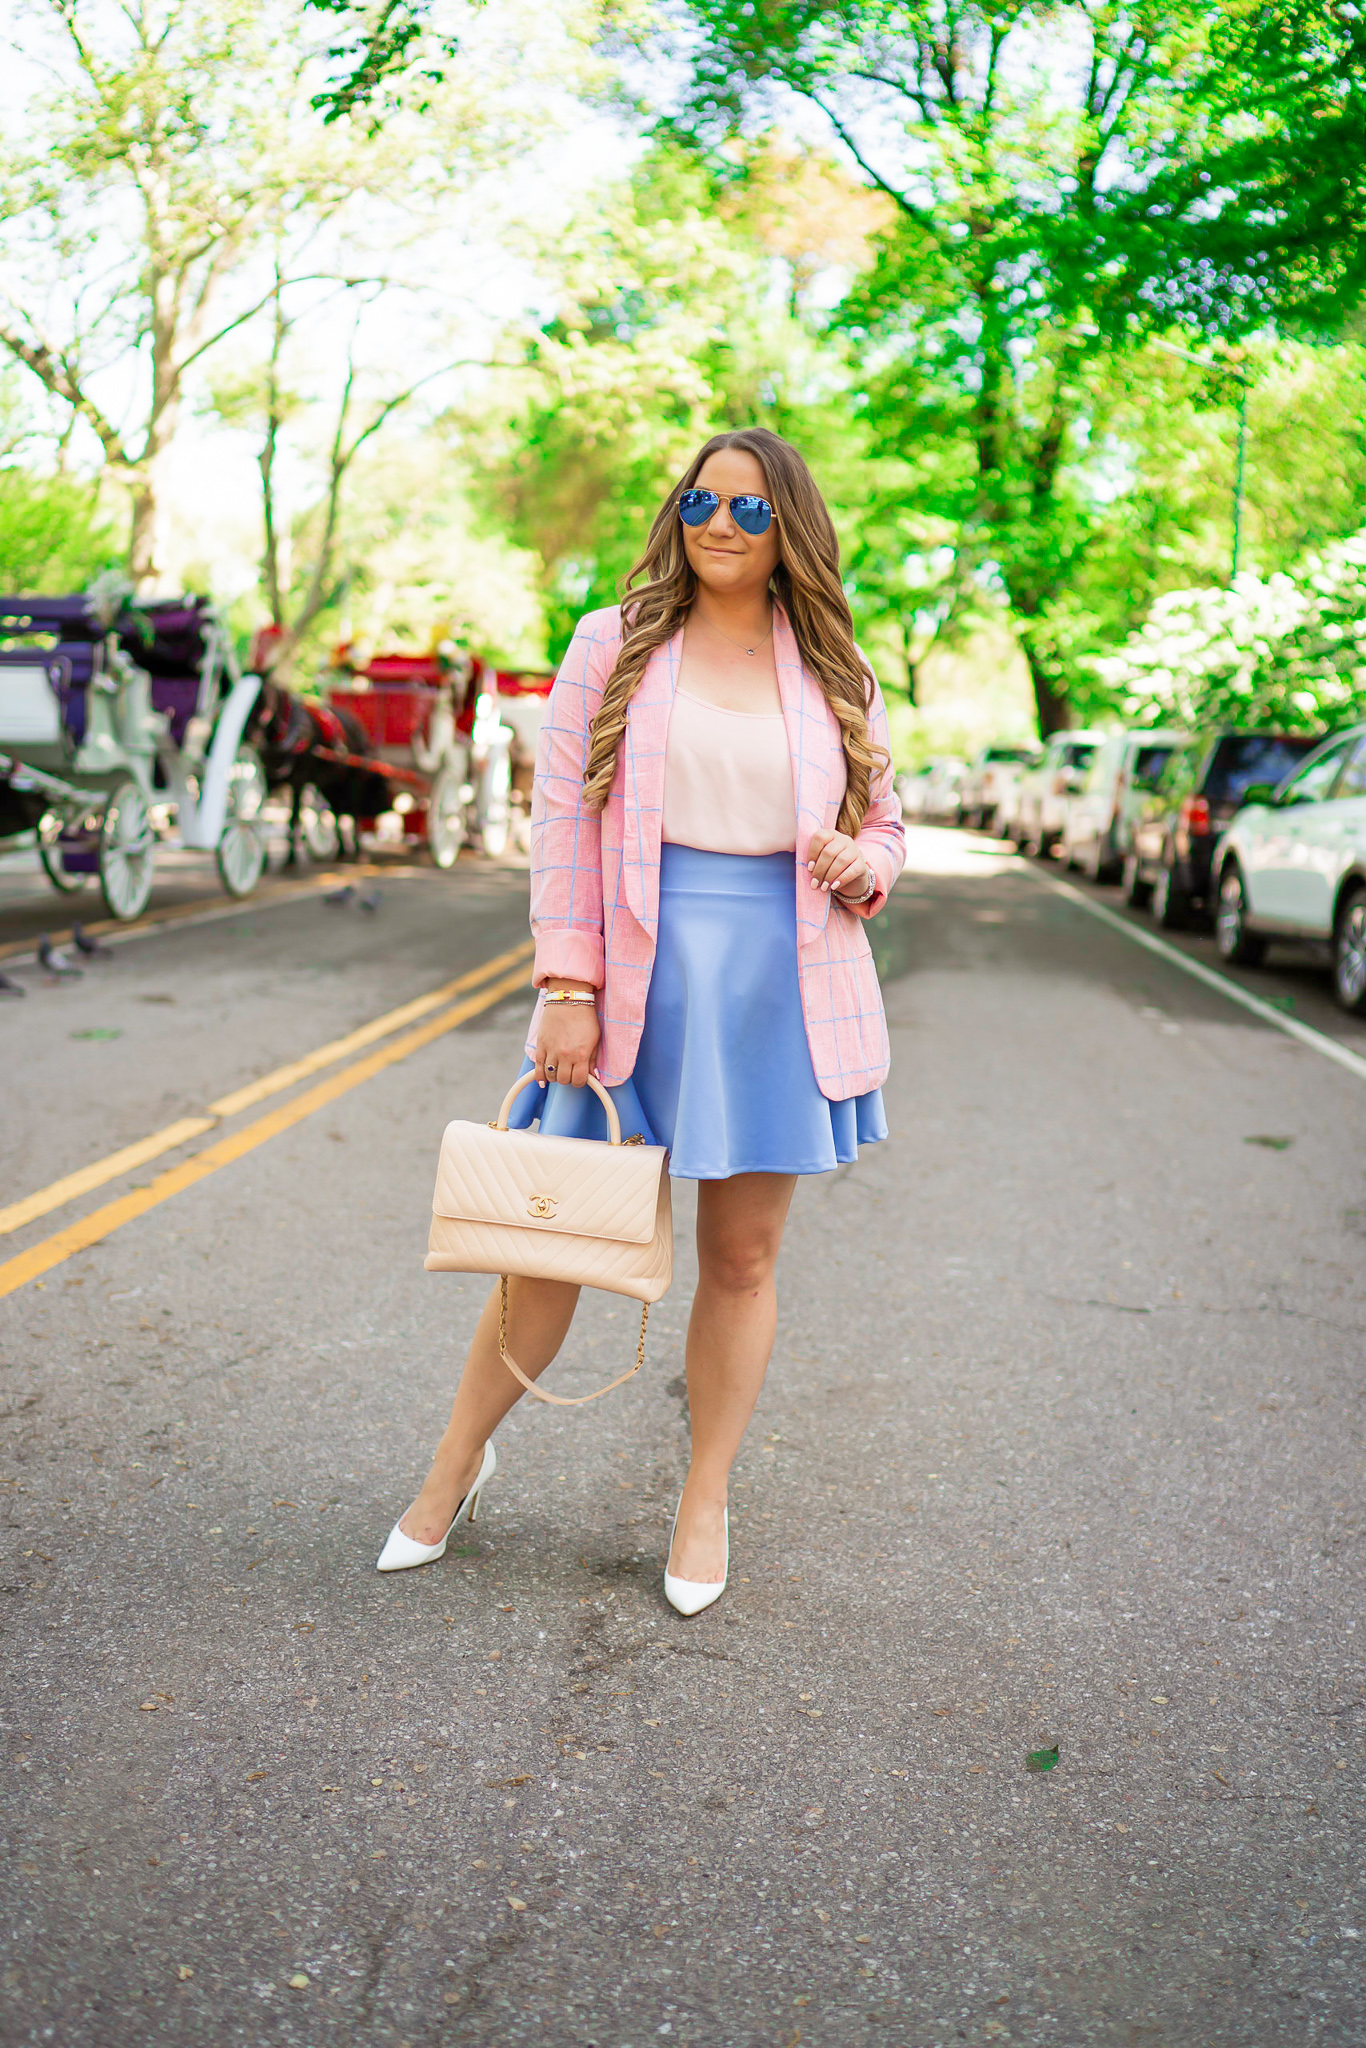 missyonmadison, missyonmadison blog, la blogger, missyonmadison instagram, currently wearing, style inspo, outfit inspo, outfit ideas, central park nyc, nyc blogger, travel blogger, checkered blazer, blue skater skirt, amazon fashion, white pumps, white pointed toe pumps, beige chanel bag, chanel top handle bag, pink chiffon camisole, chanel bag, hair extensions, nyc street style,